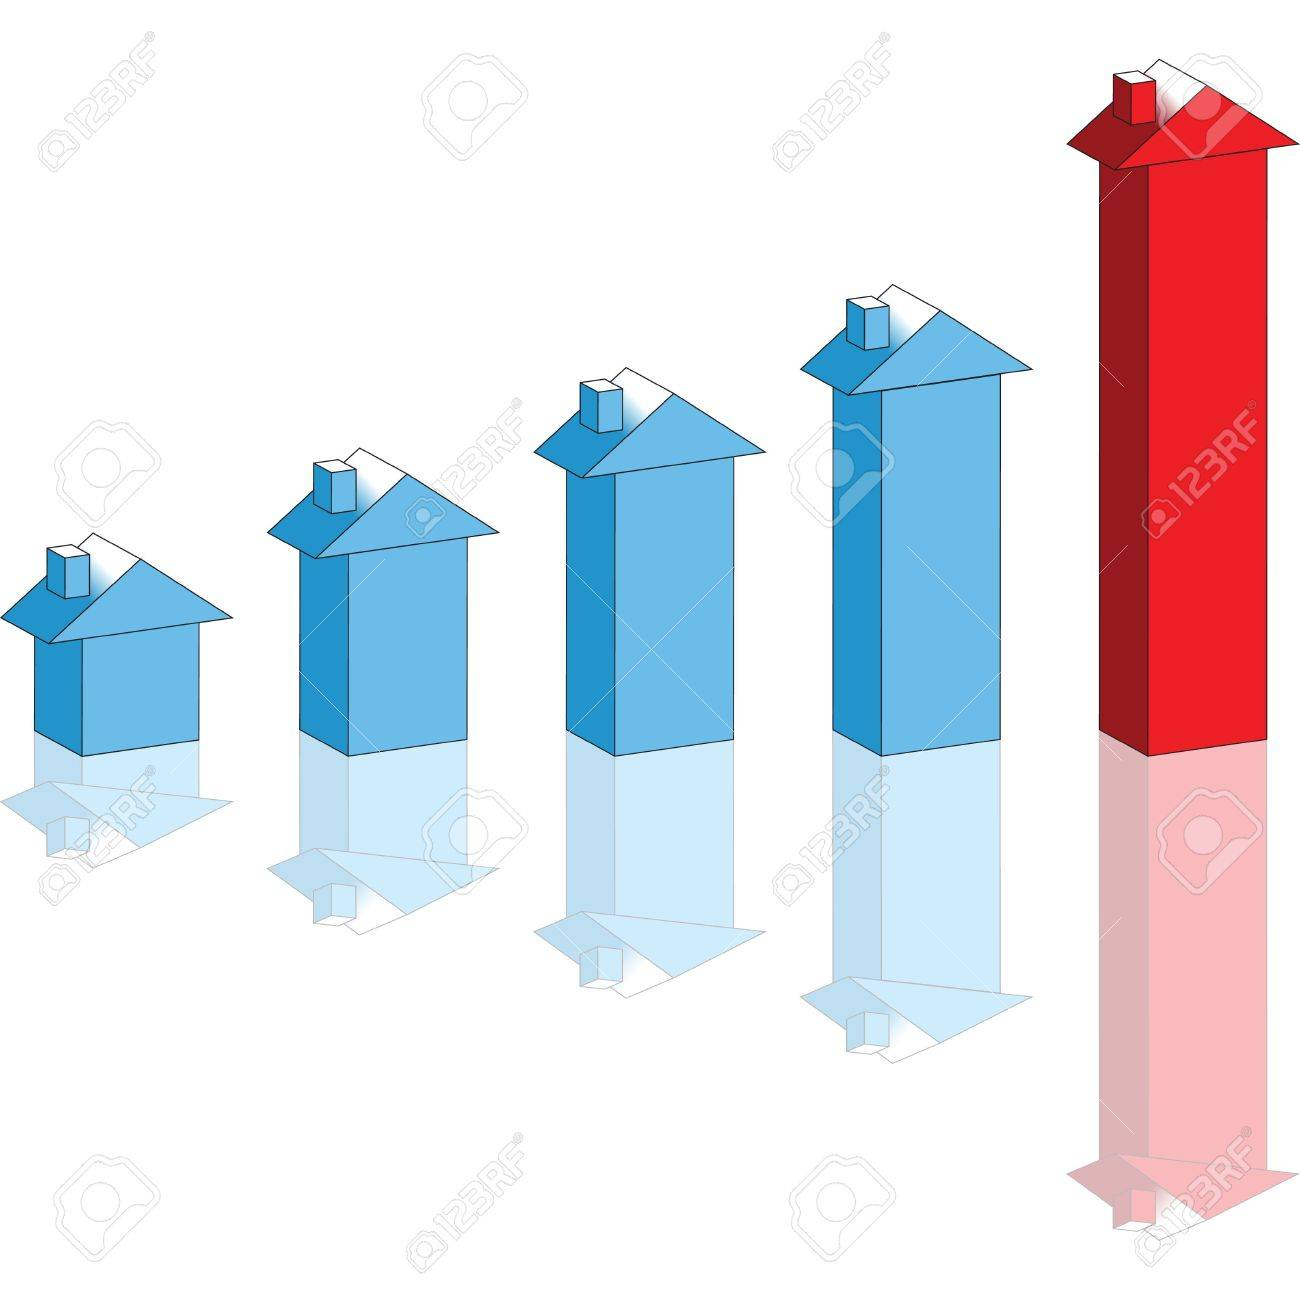 growing house prices graph stock photo, picture and royalty free